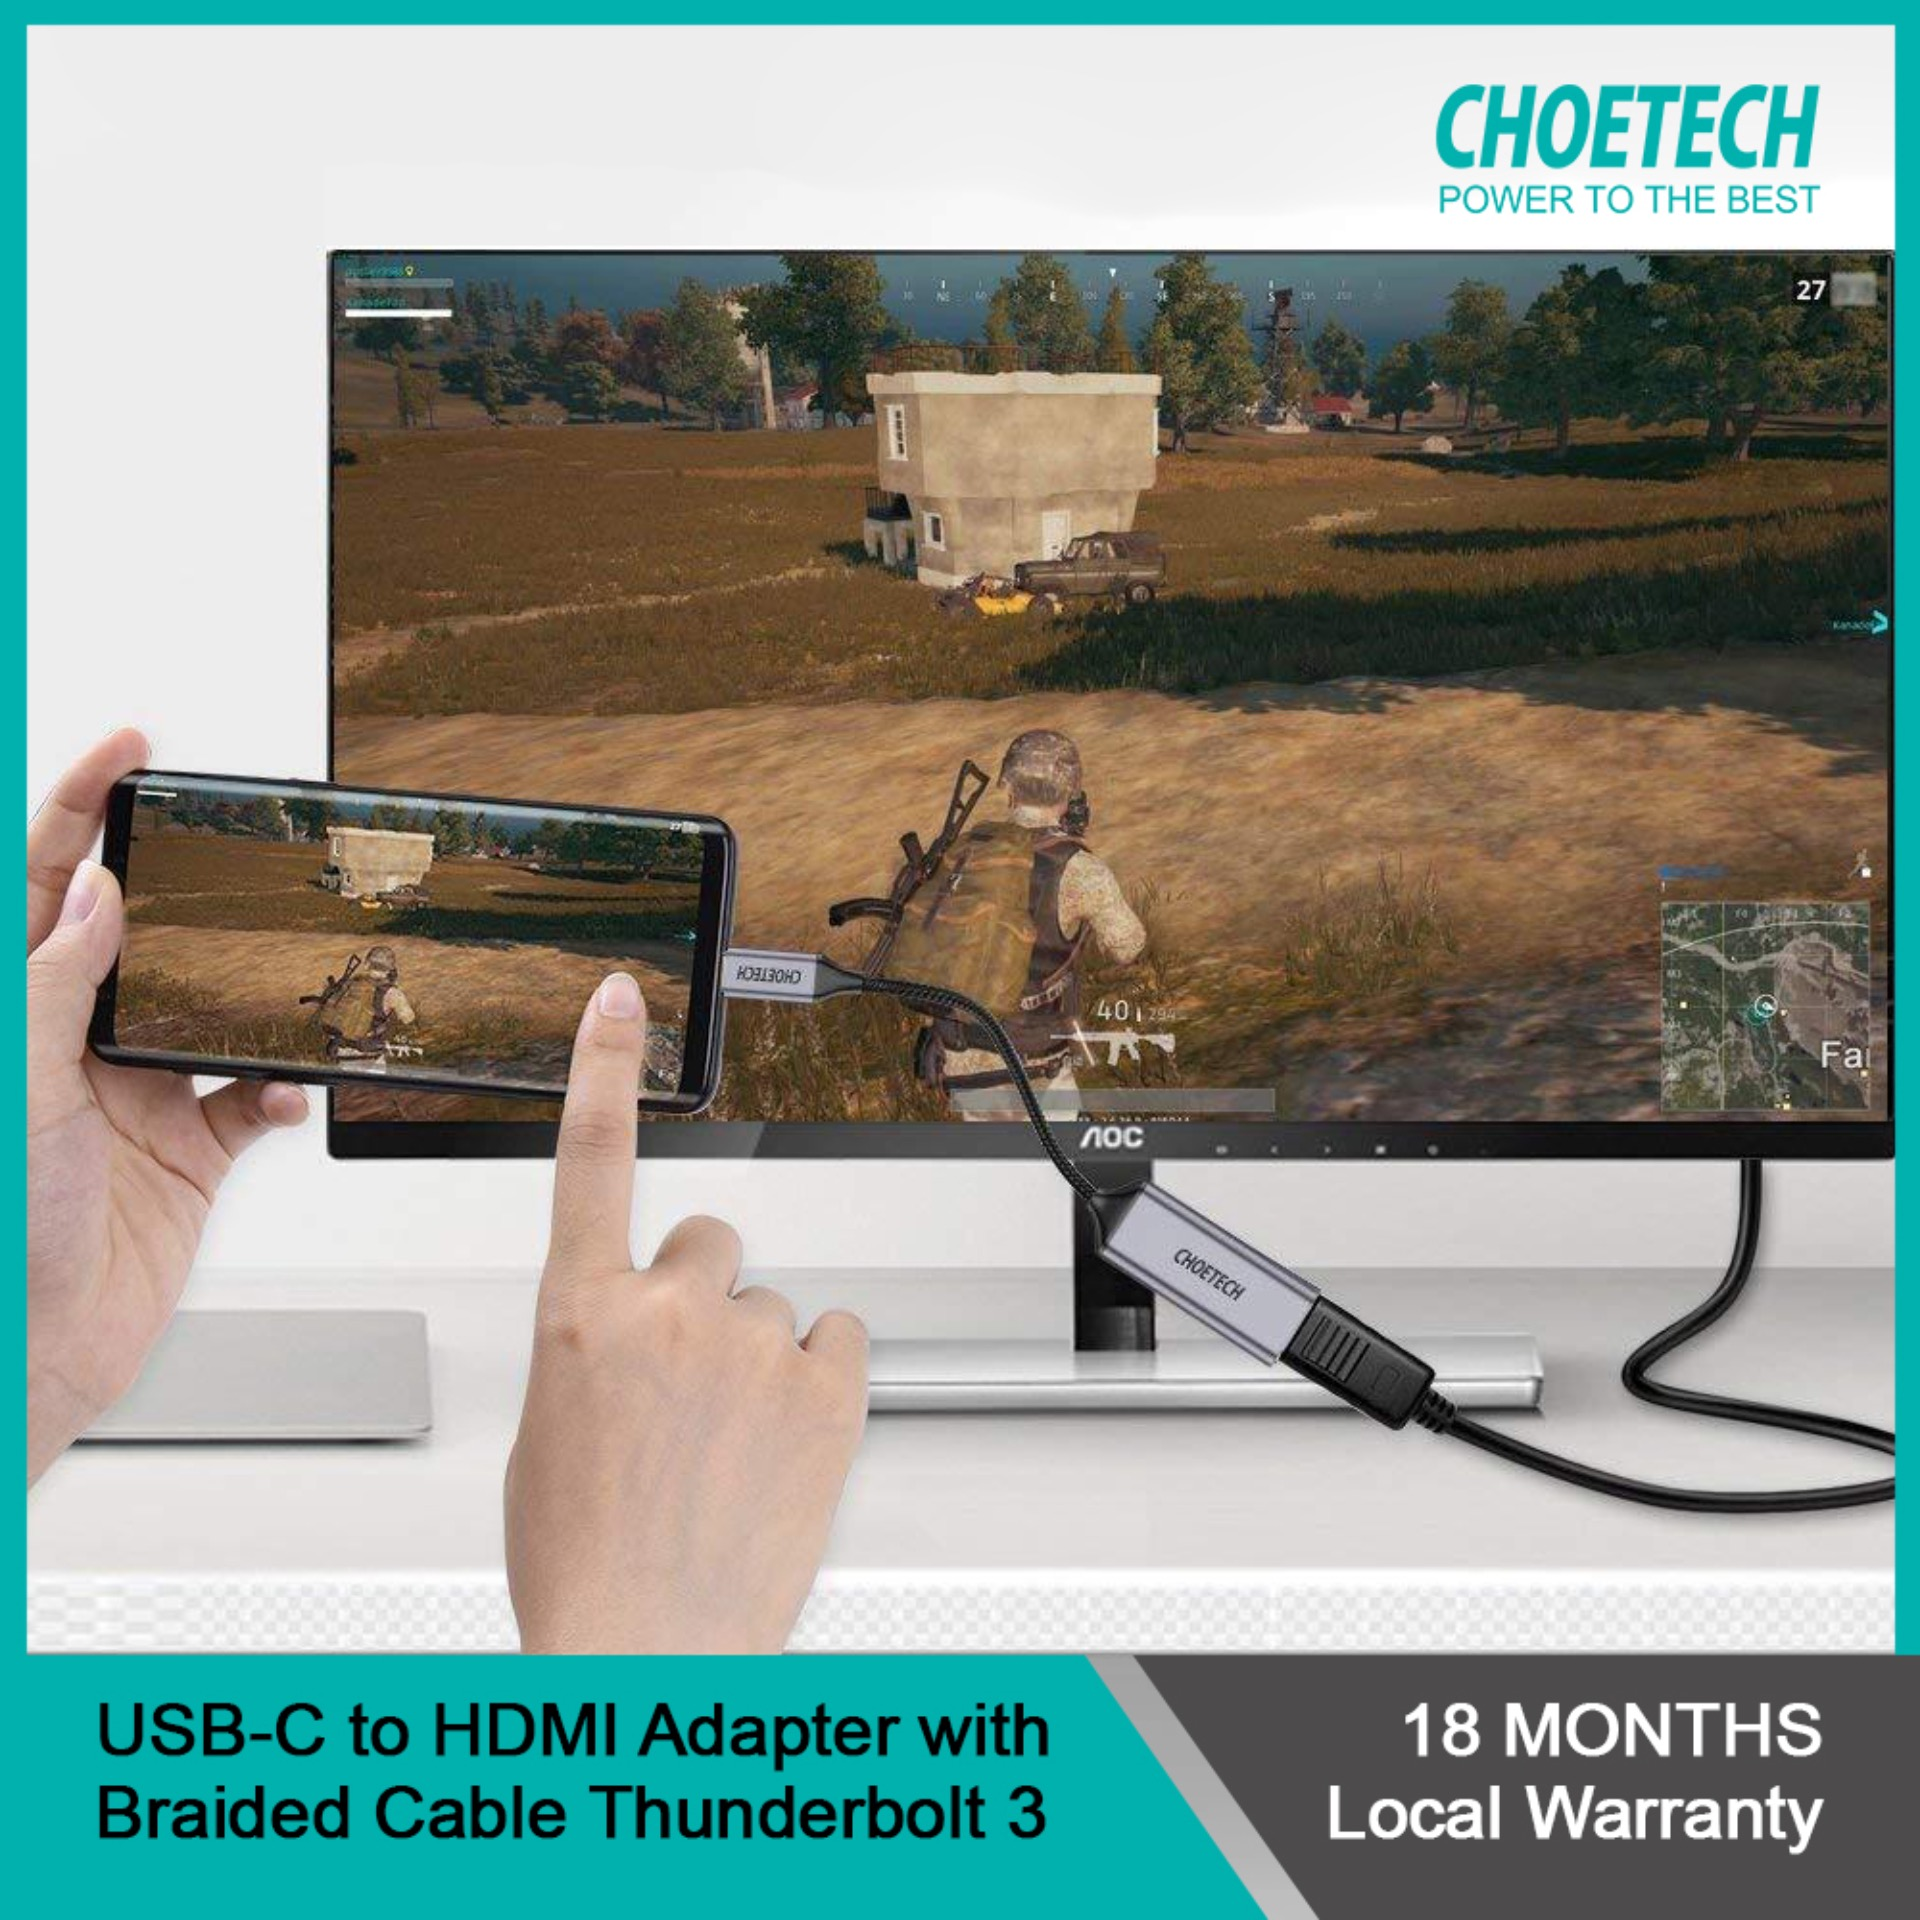 CHOETECH USB-C to HDMI Adapter With 4Kx2K, 60Hz Braided Cable Thunderbolt 3